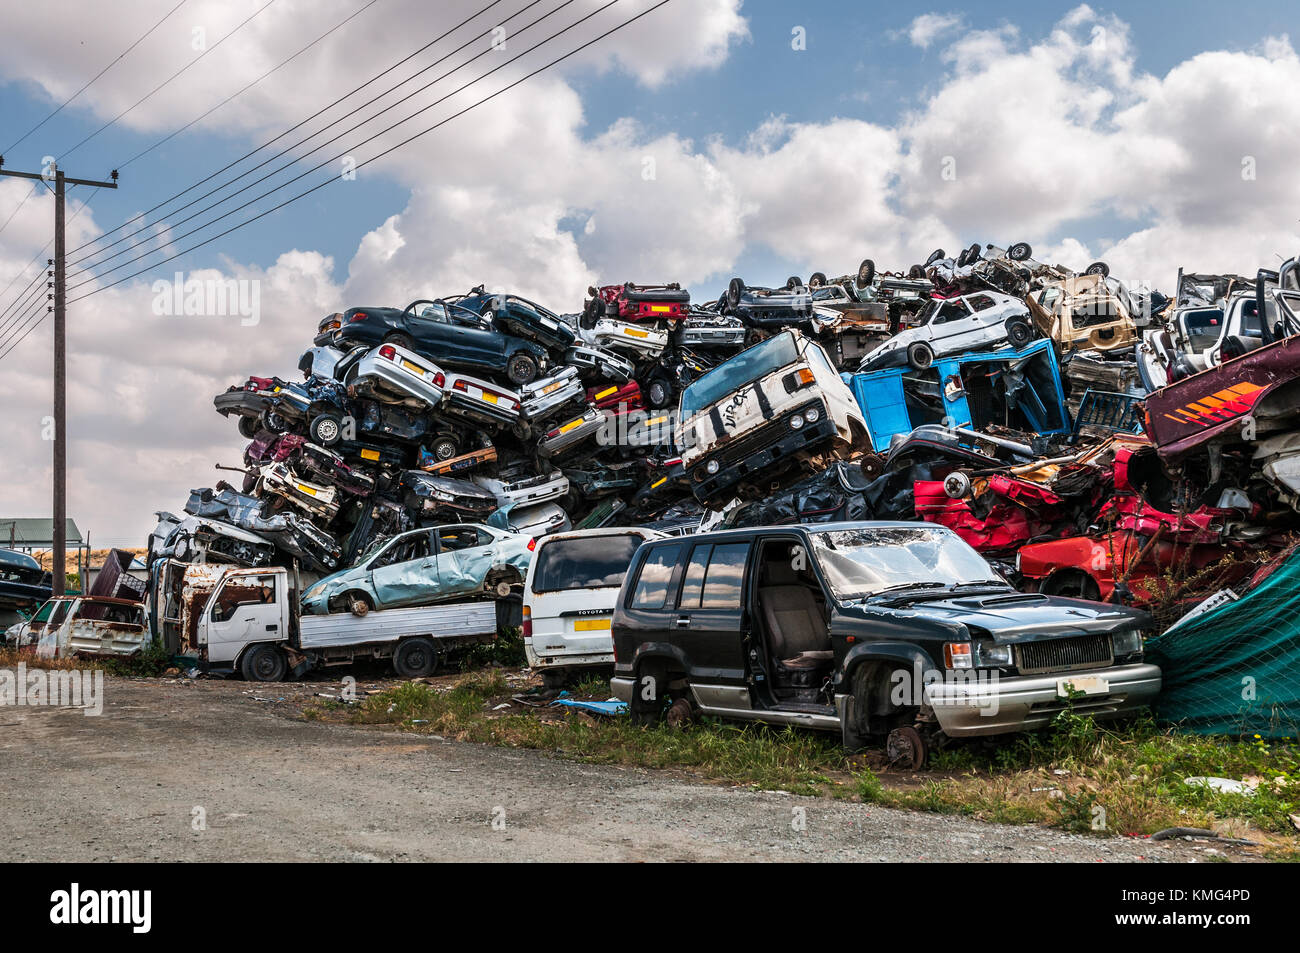 Used abandoned cars stacked for recycling in a scrap metal facility ...